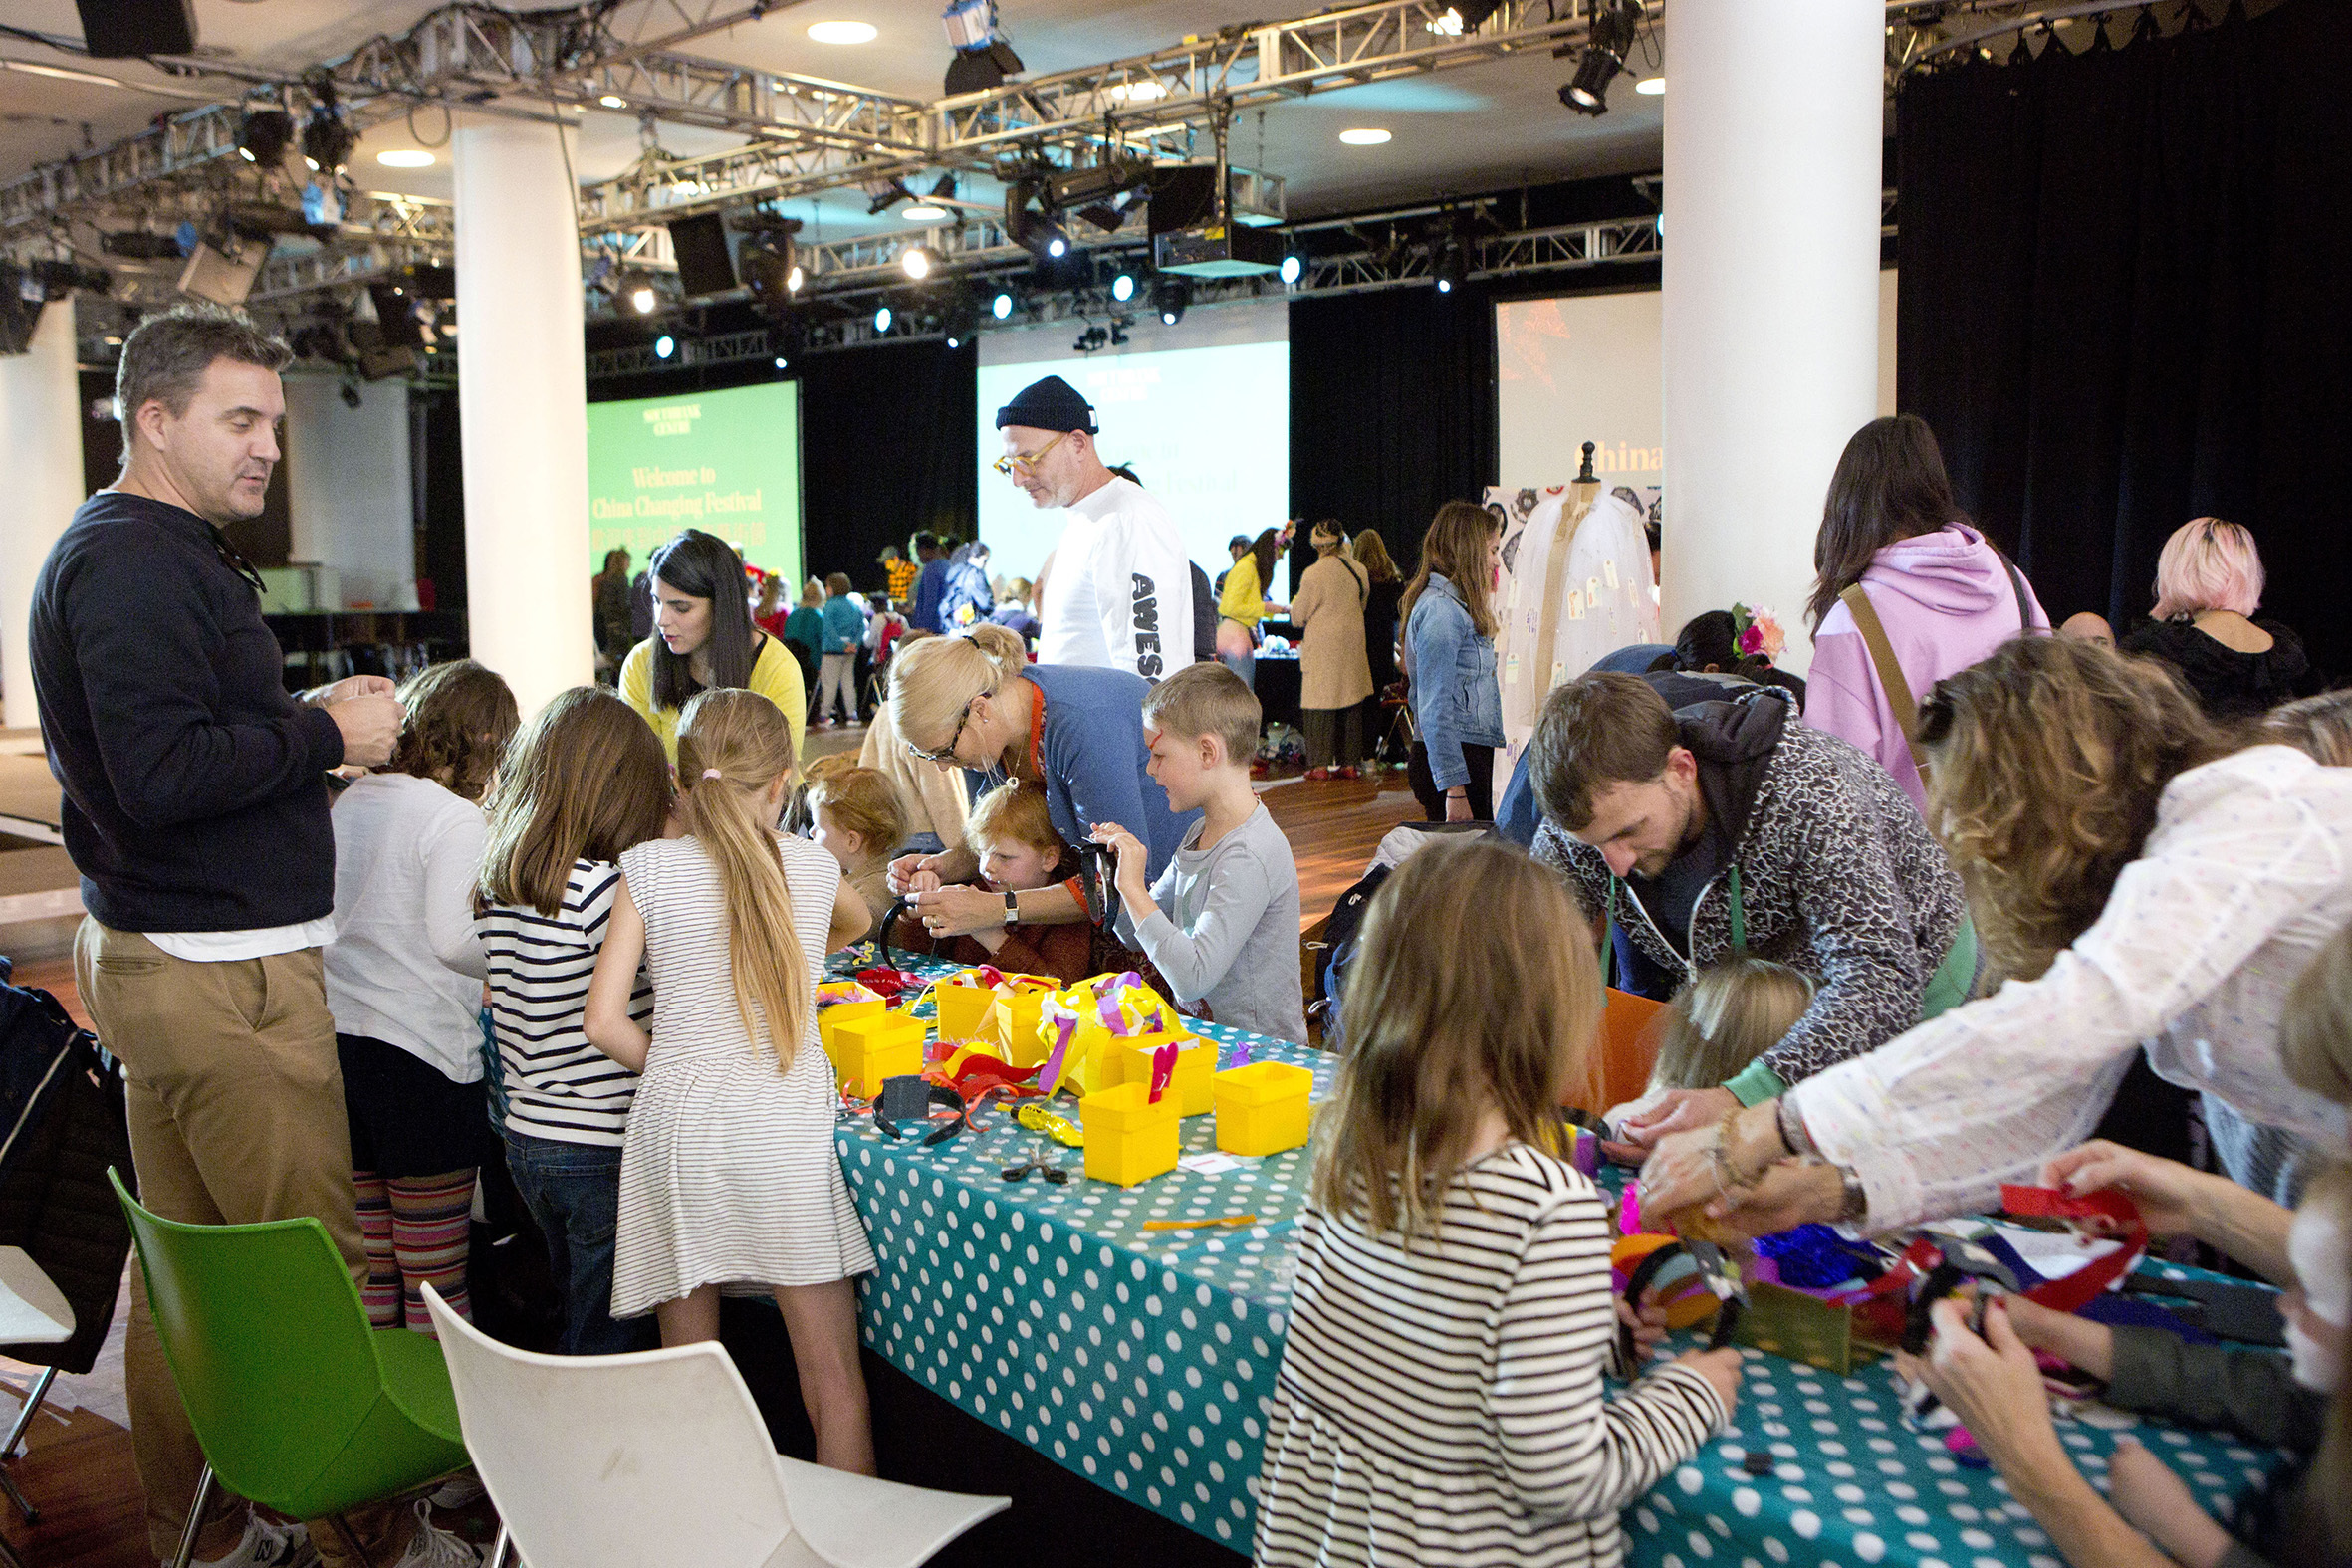 London Literature Festival events for kids